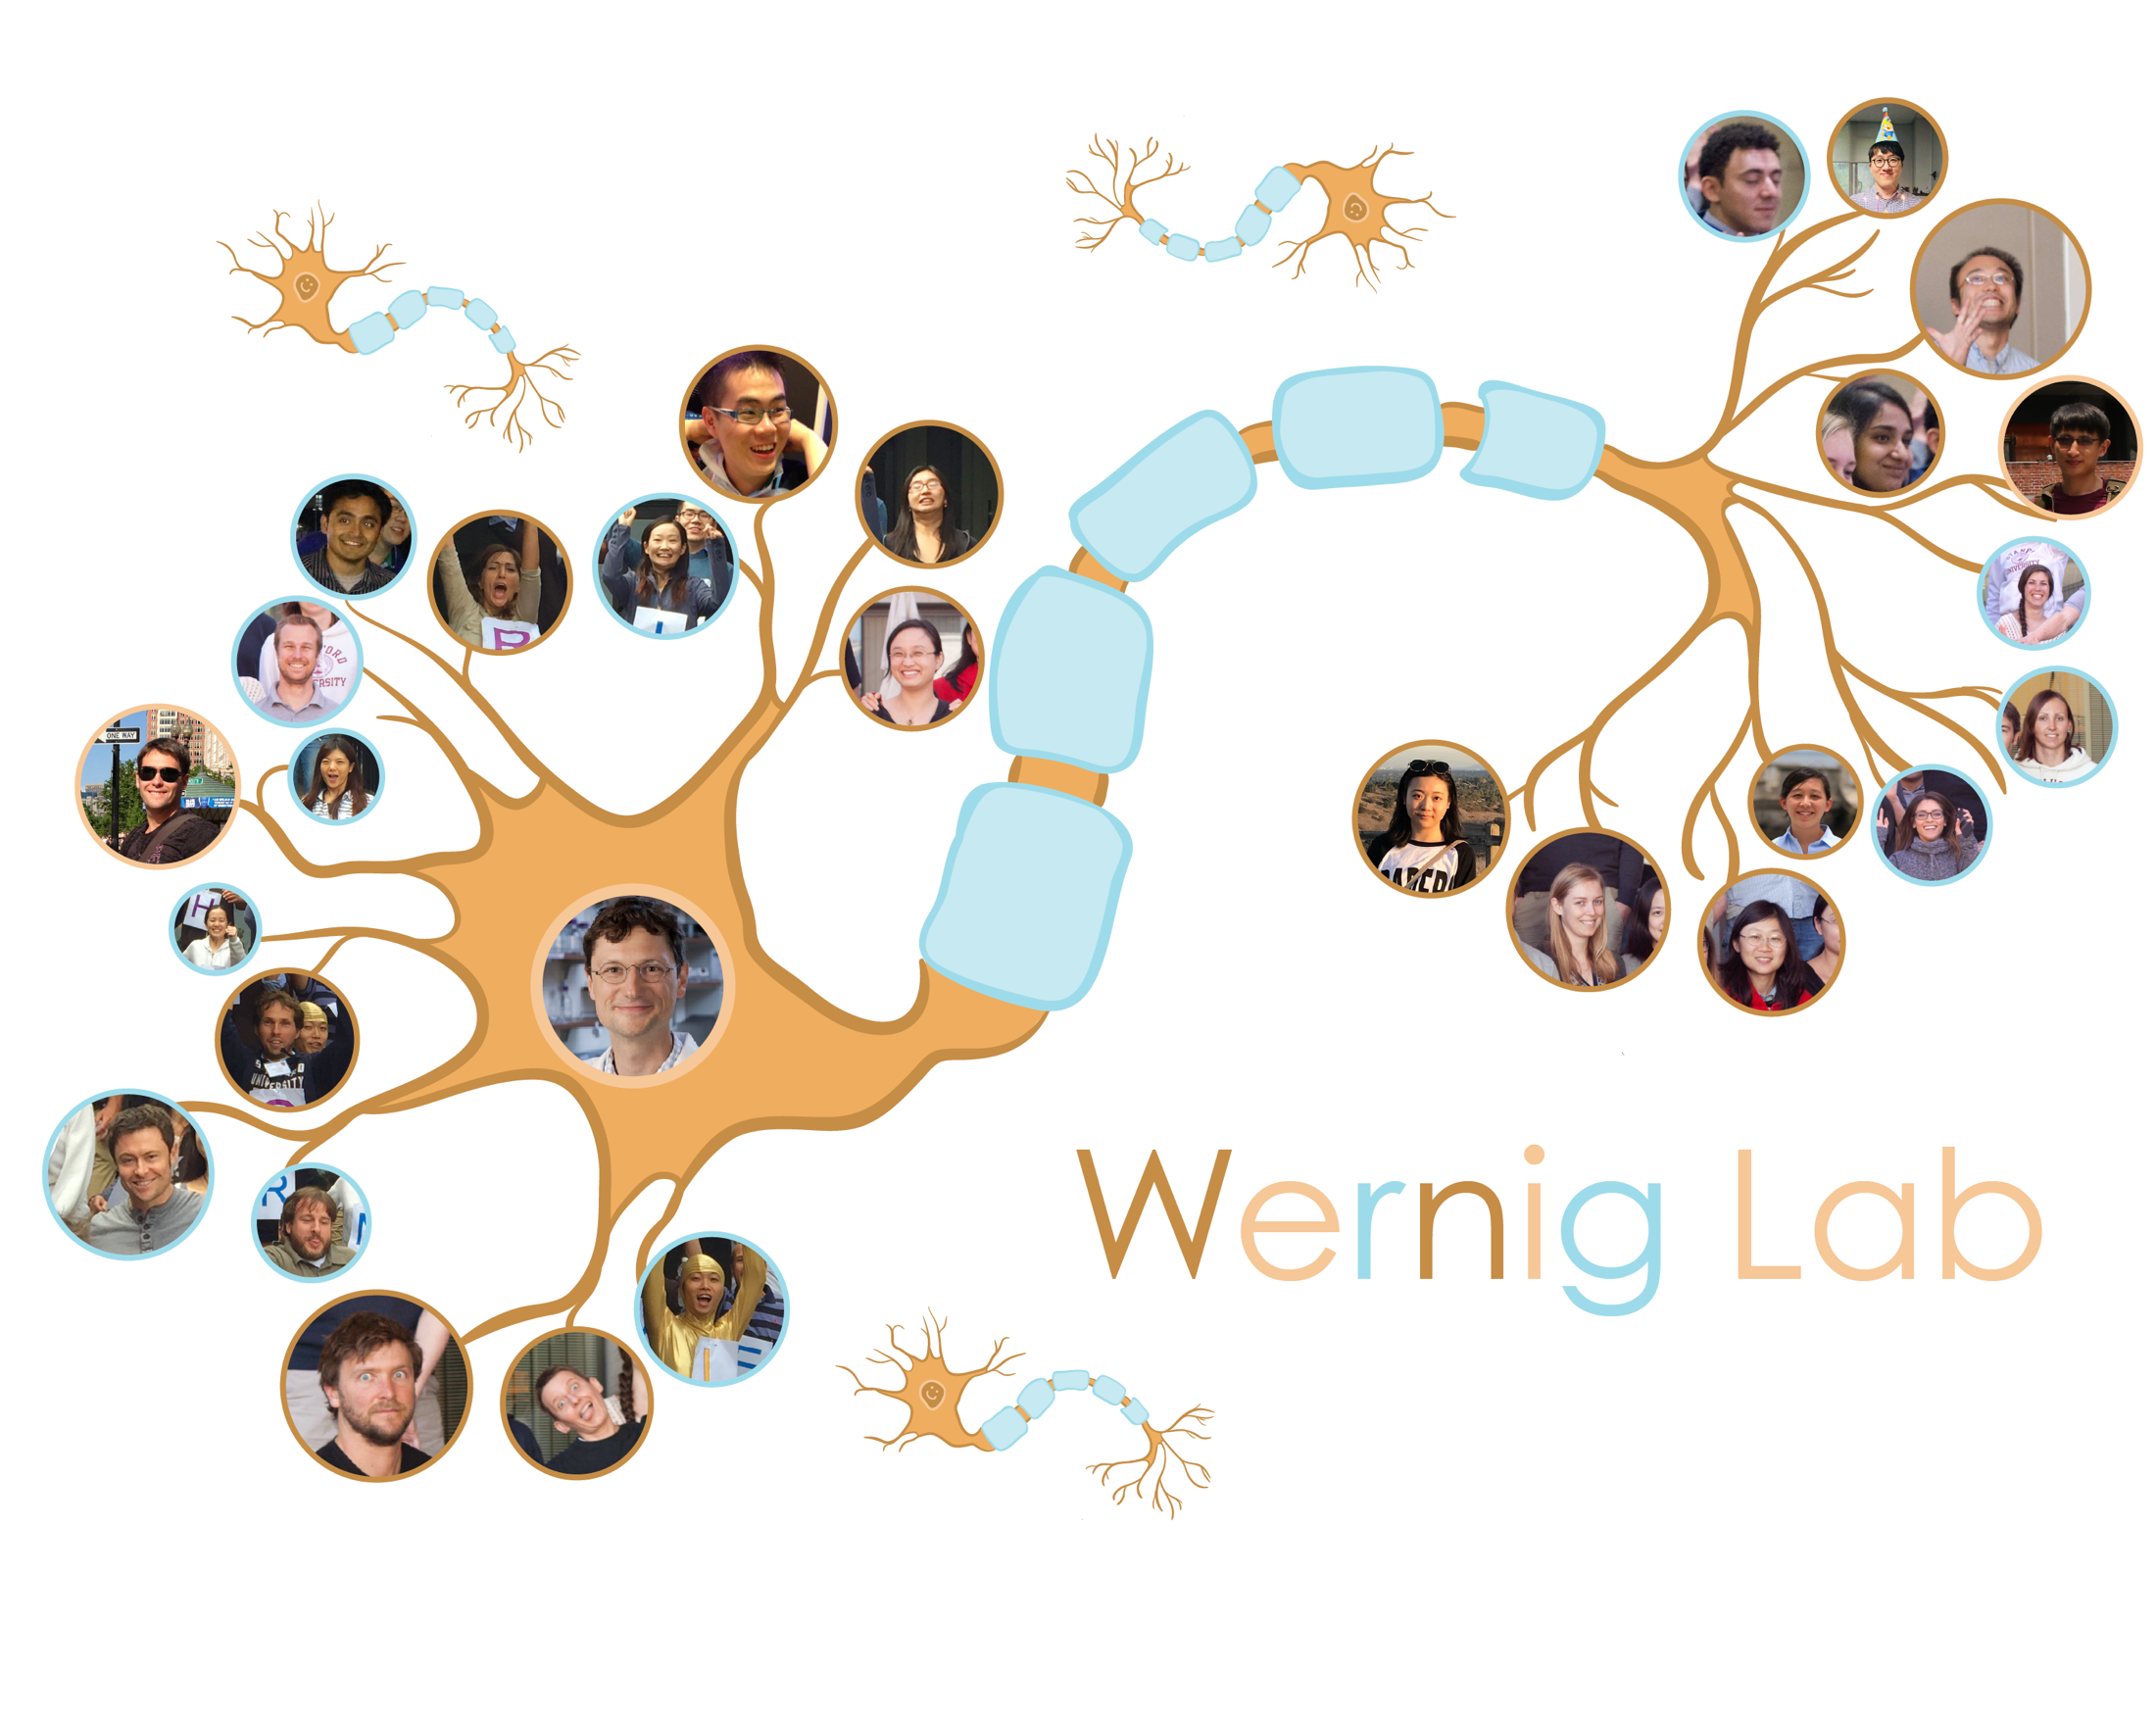 Wernig Lab team graphic